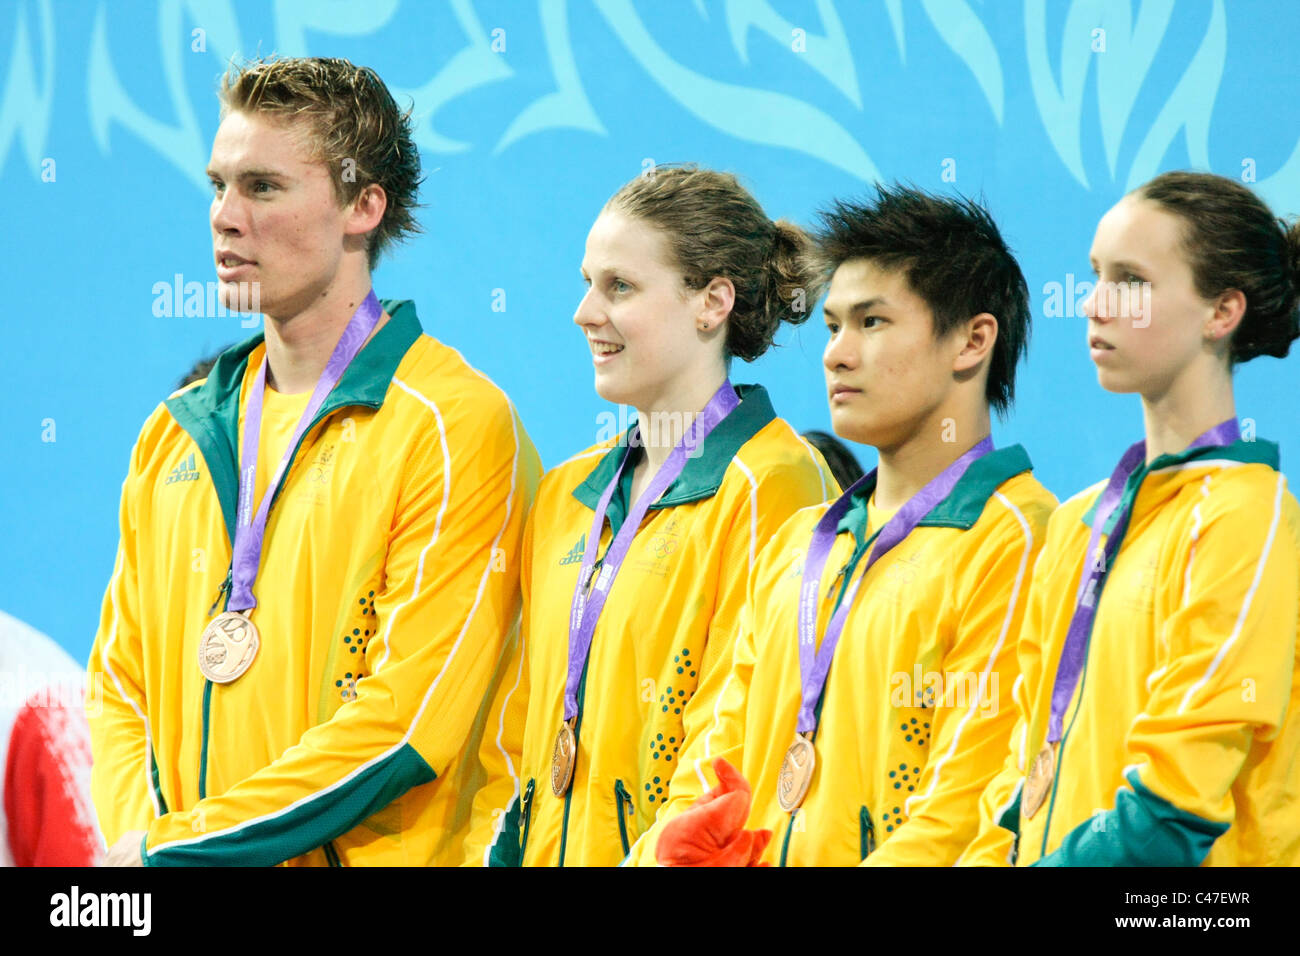 Team Australia takes the bronze in the Mixed 4x100m Medley Relay Finals. - Stock Image